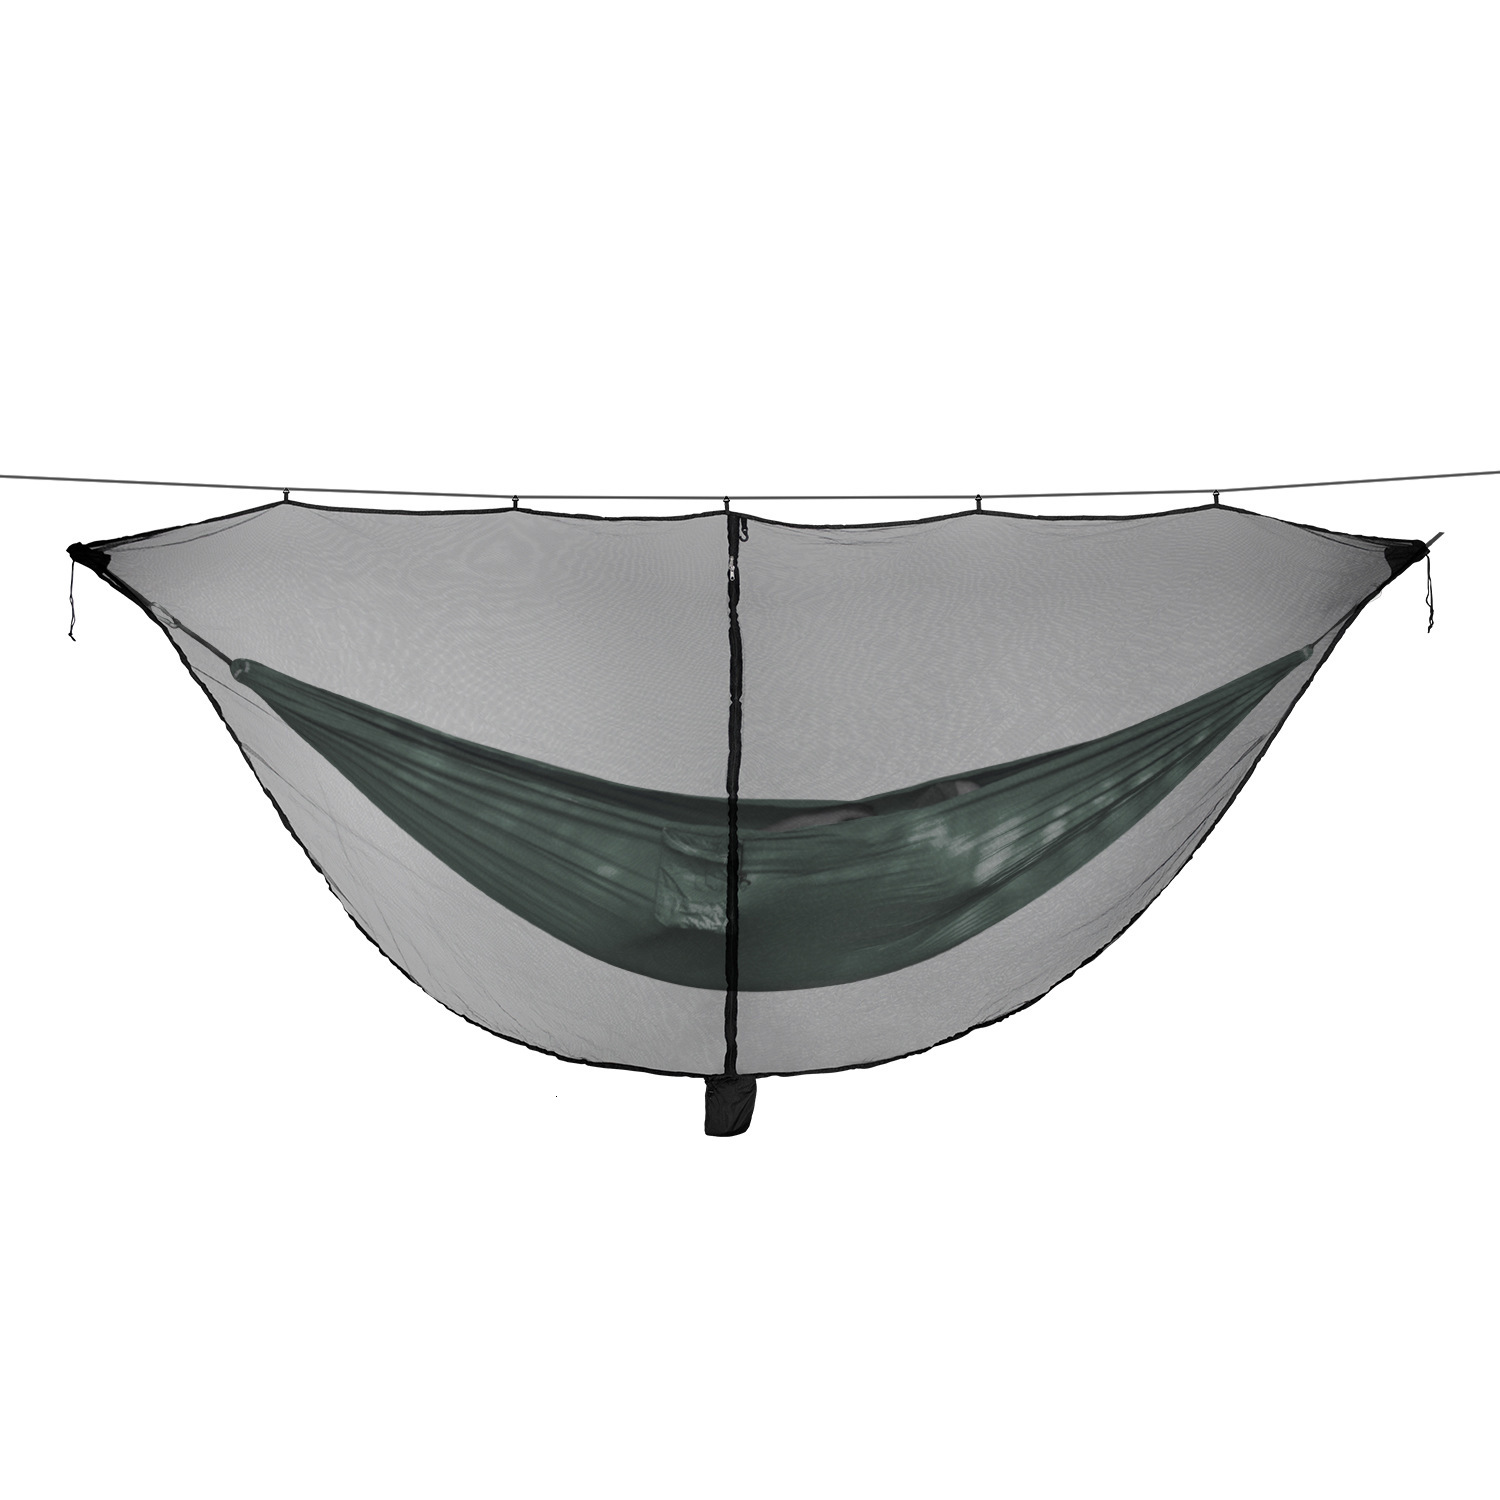 Separation Type Hammock Mosquito Net Fund Outdoor Easy Setup Travel Portable Coupe Separating Defence Mosquito Net